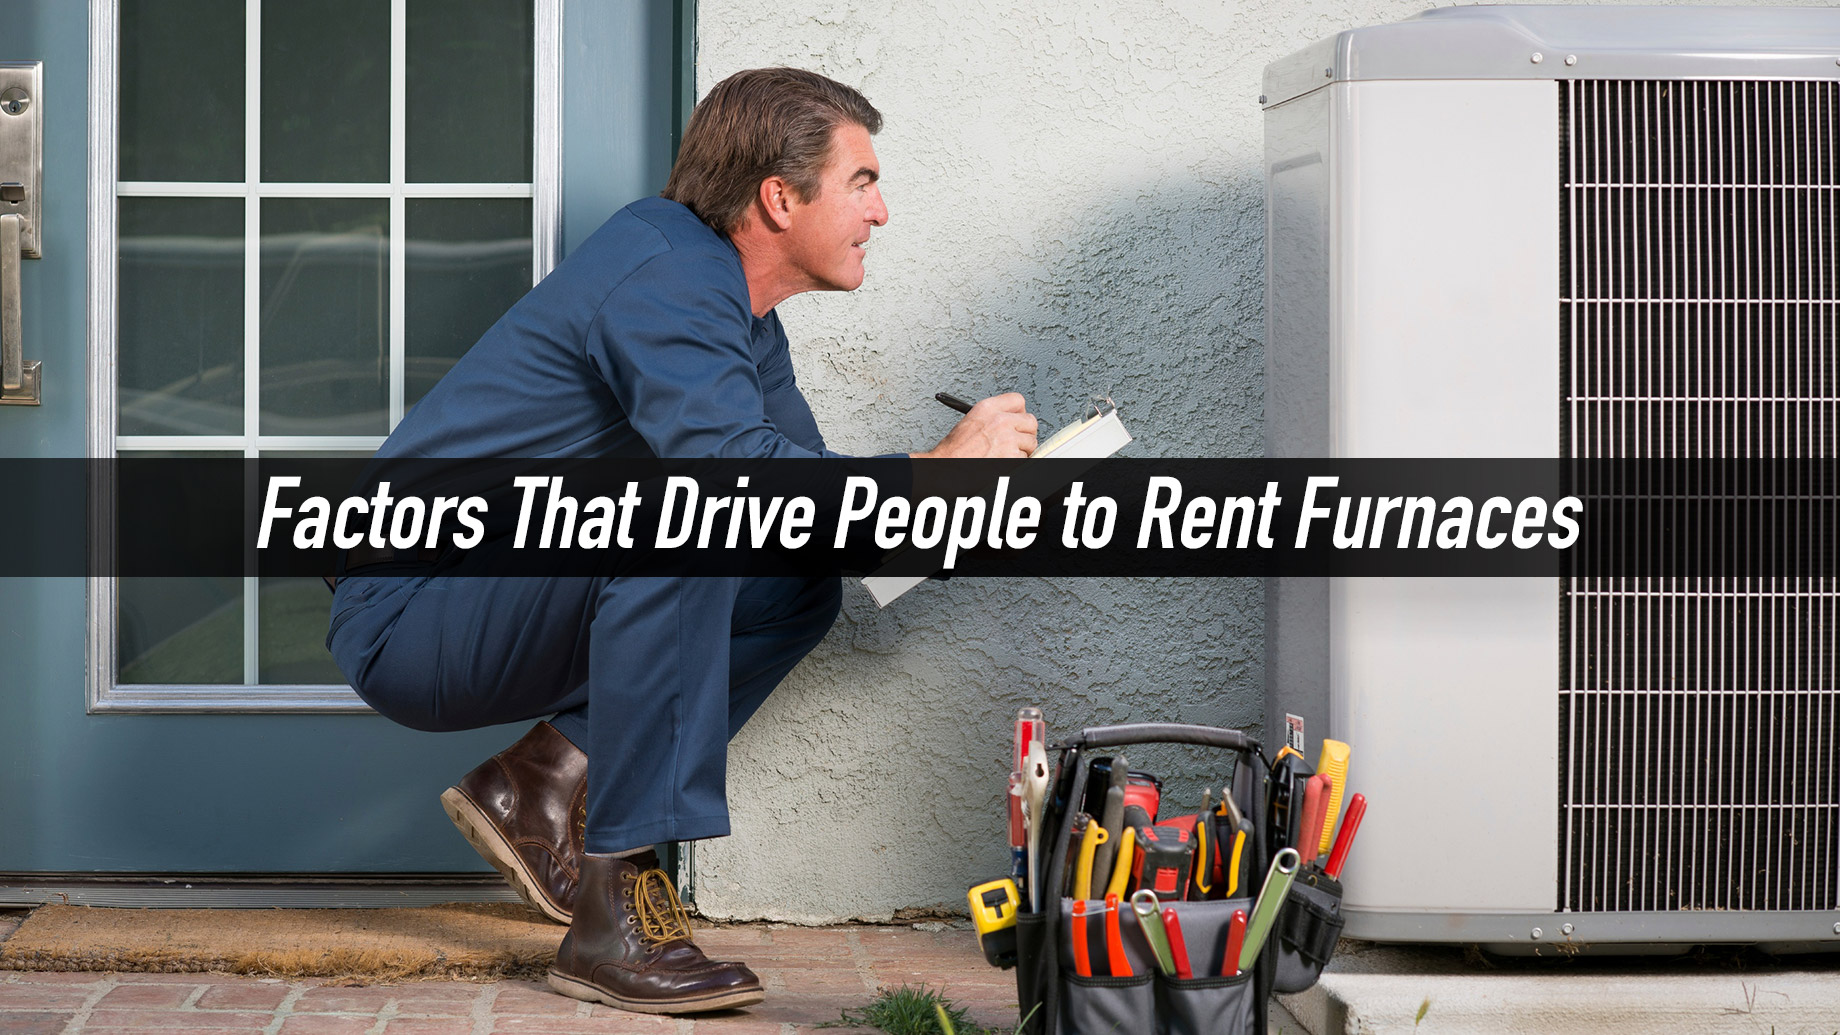 Factors That Drive People to Rent Furnaces